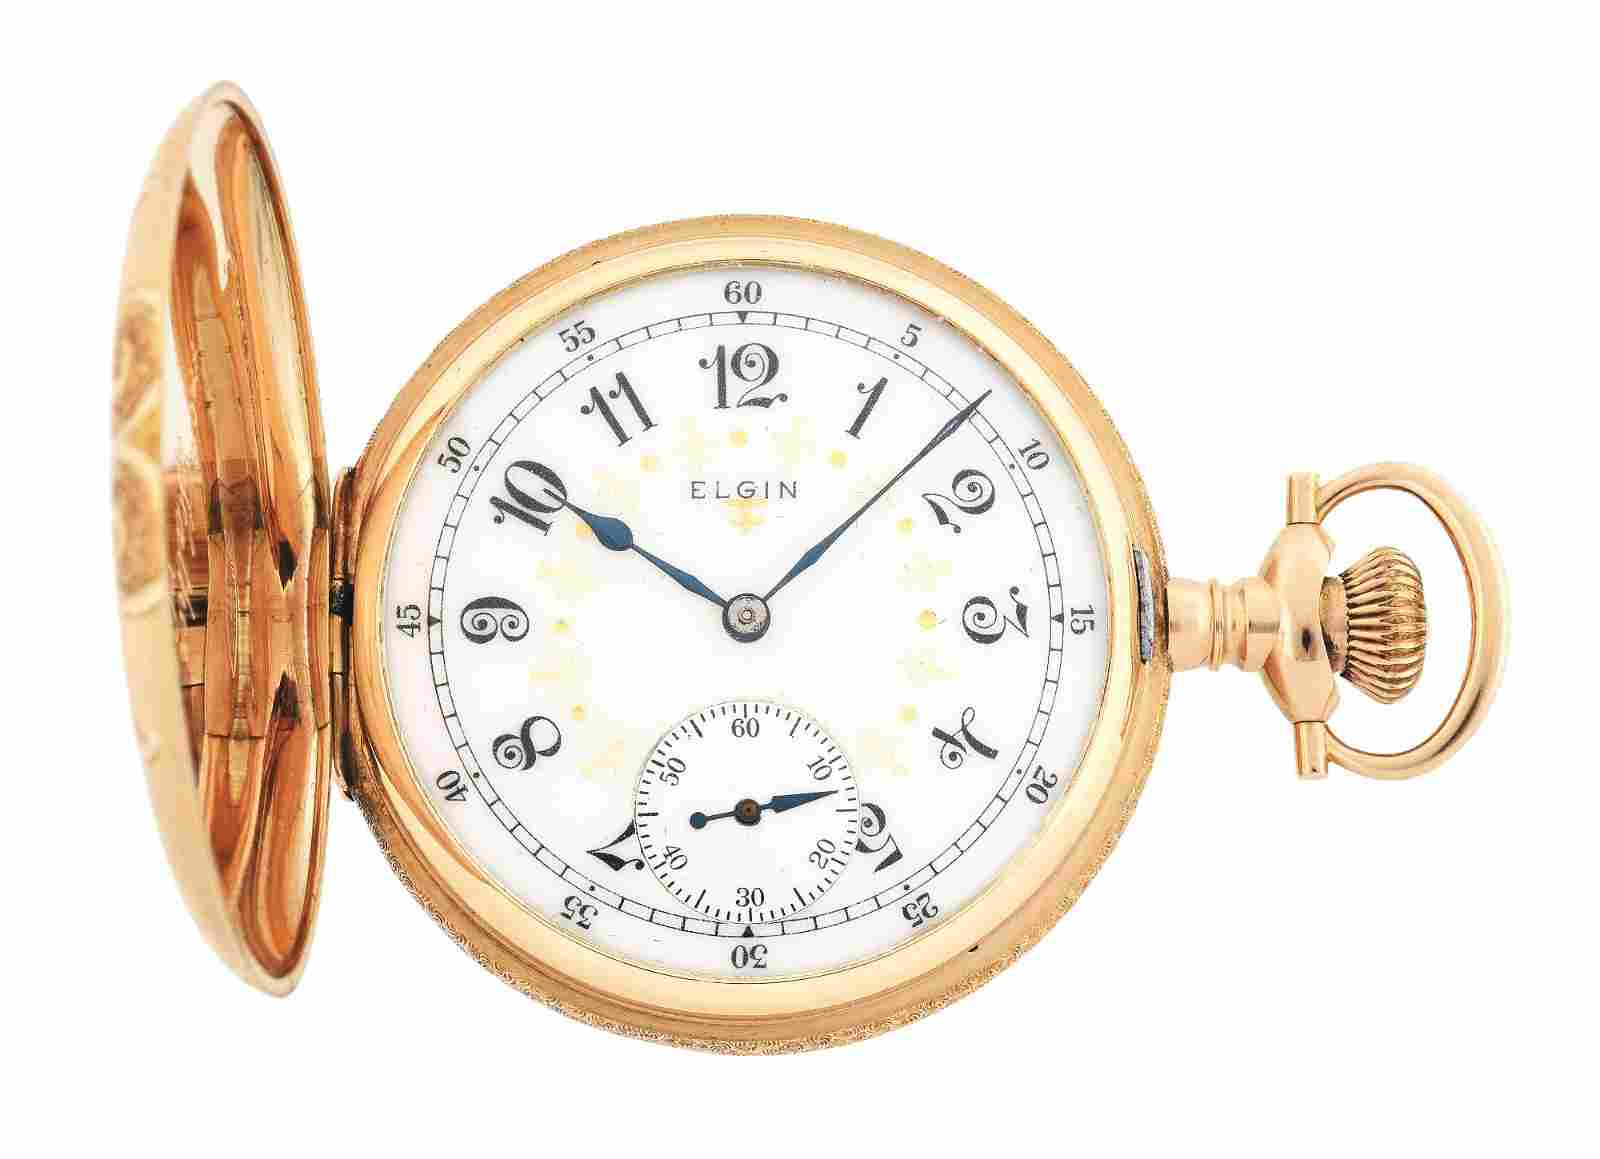 FANCY 14K GOLD ELGIN 312 MULTICOLOR H/C POCKET WATCH